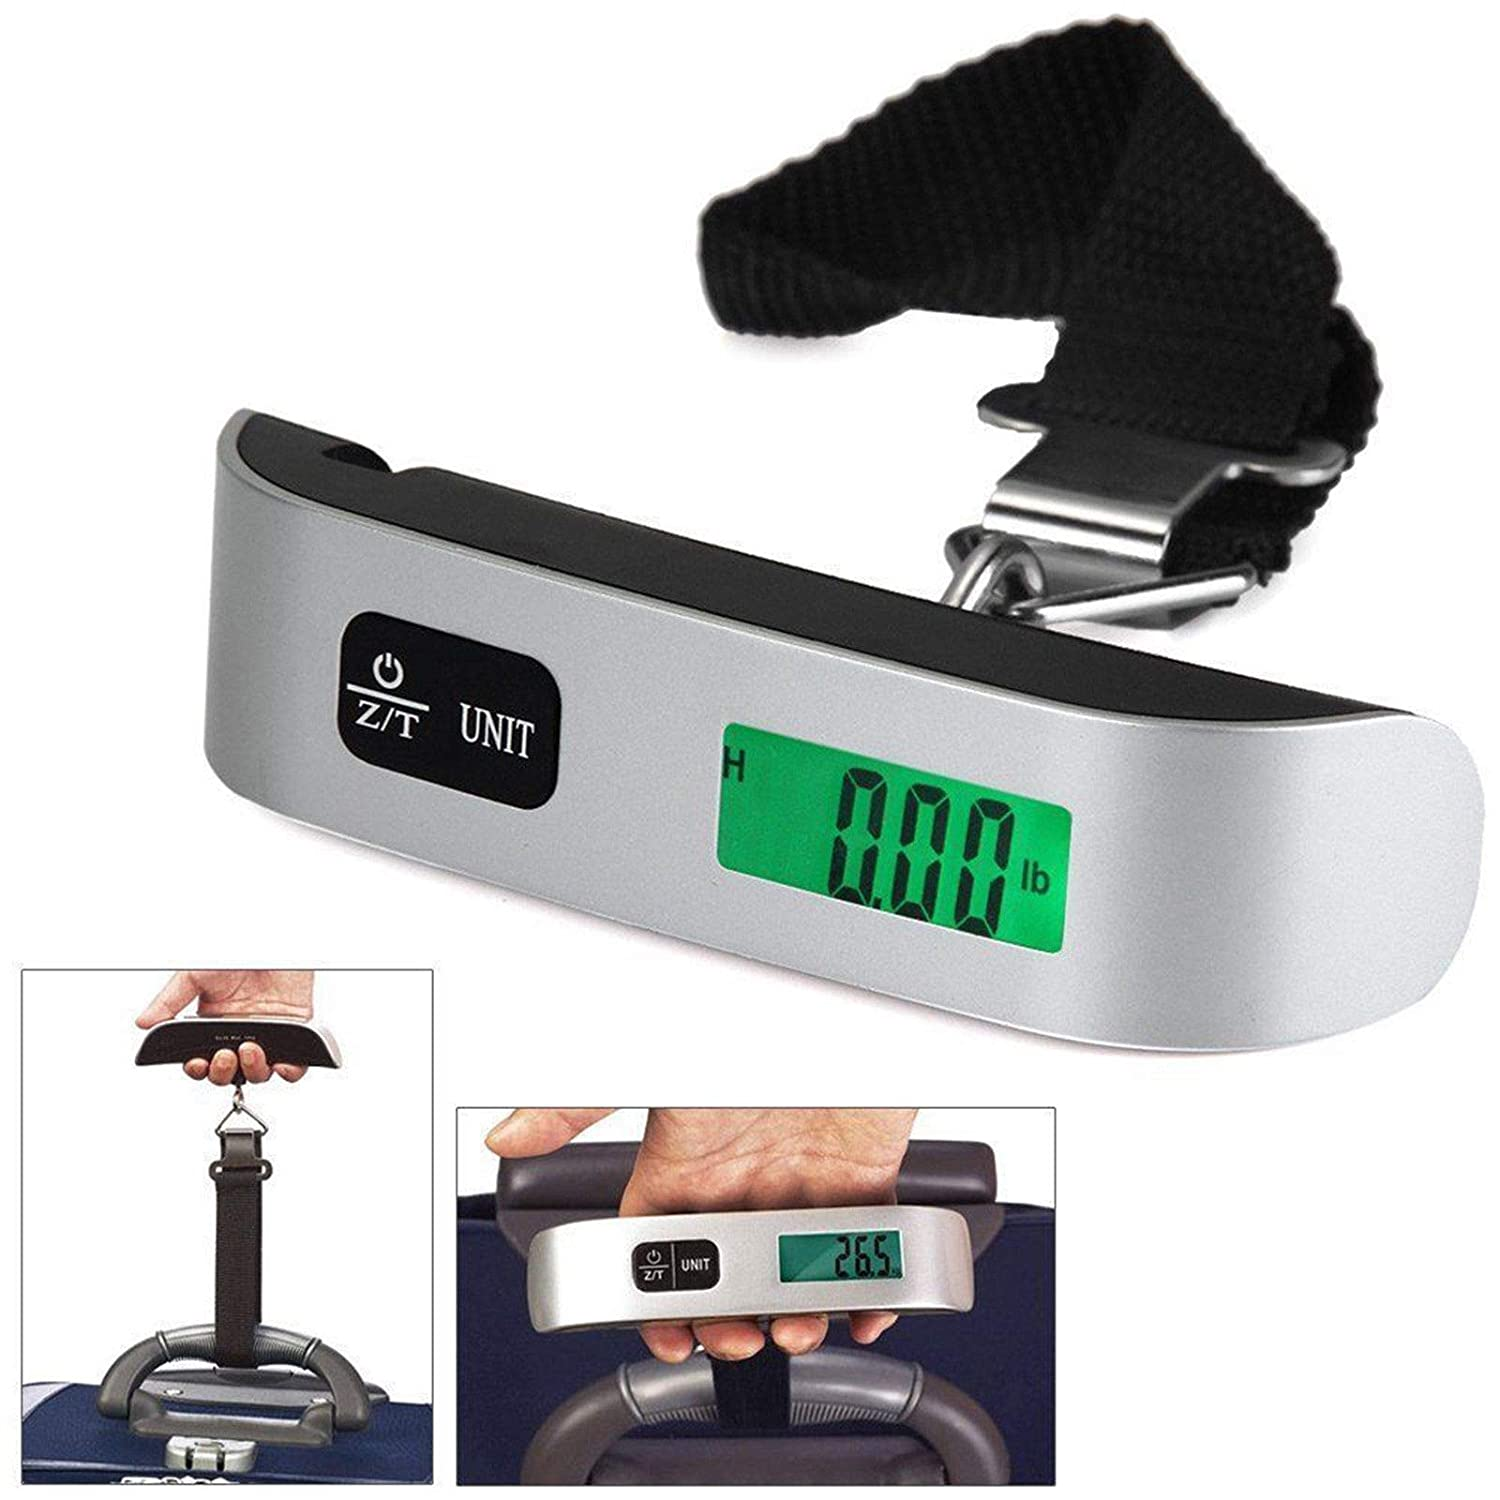 Portable LCD Digital Hanging Luggage Scale, 110 Lbs Max Weight Travel Electronic Hook with Temperature Sensor